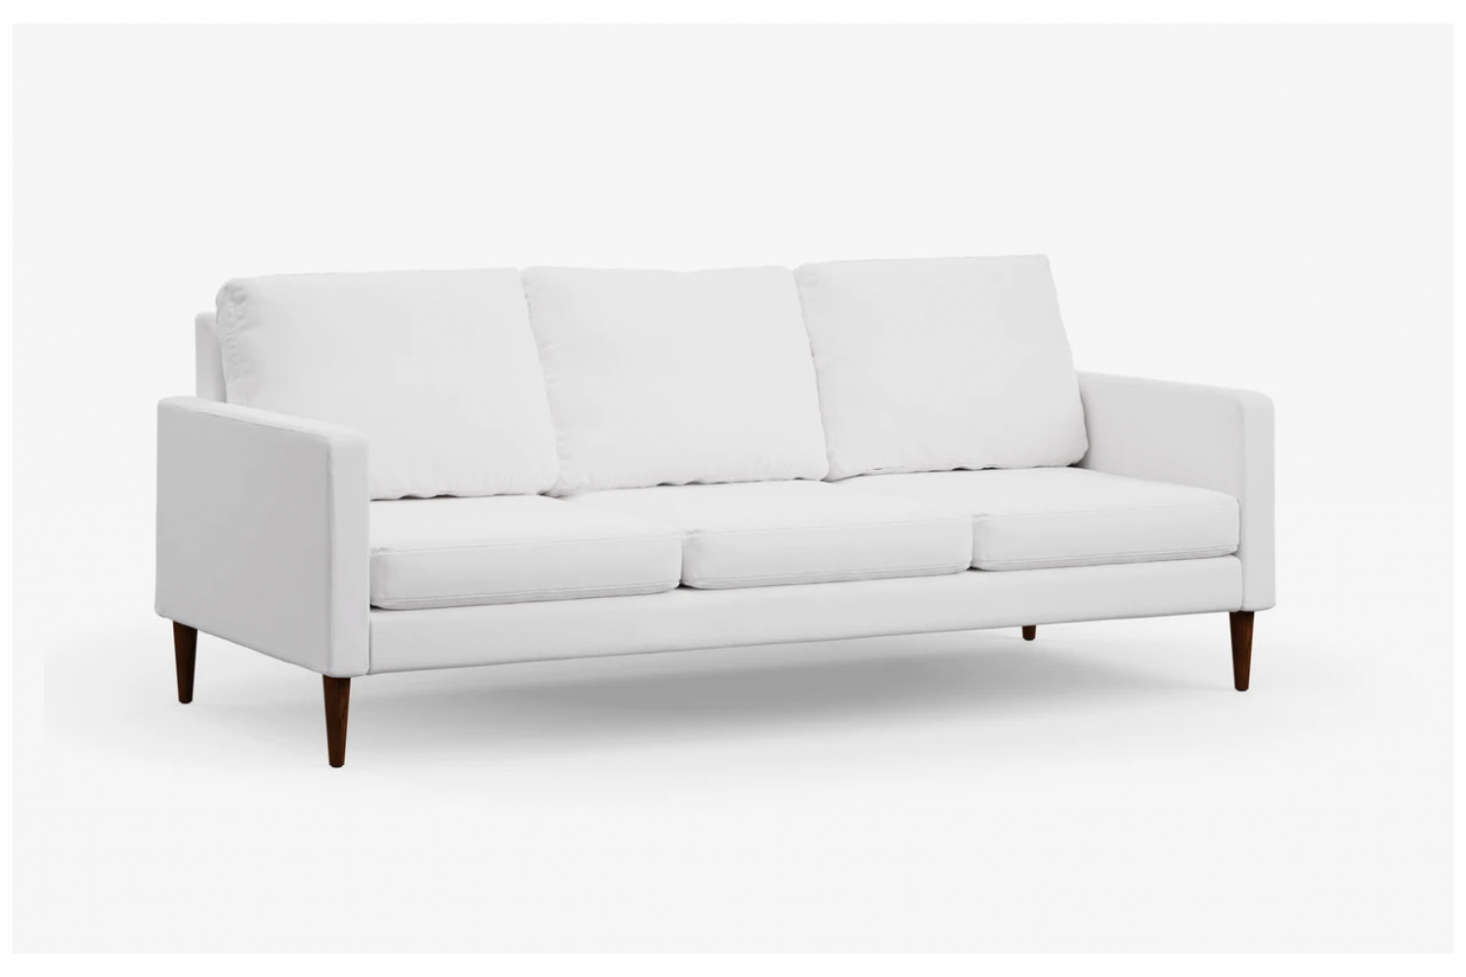 The Campaign Sofa shown in Pearl White Flat Weave upholstery is $data-src=